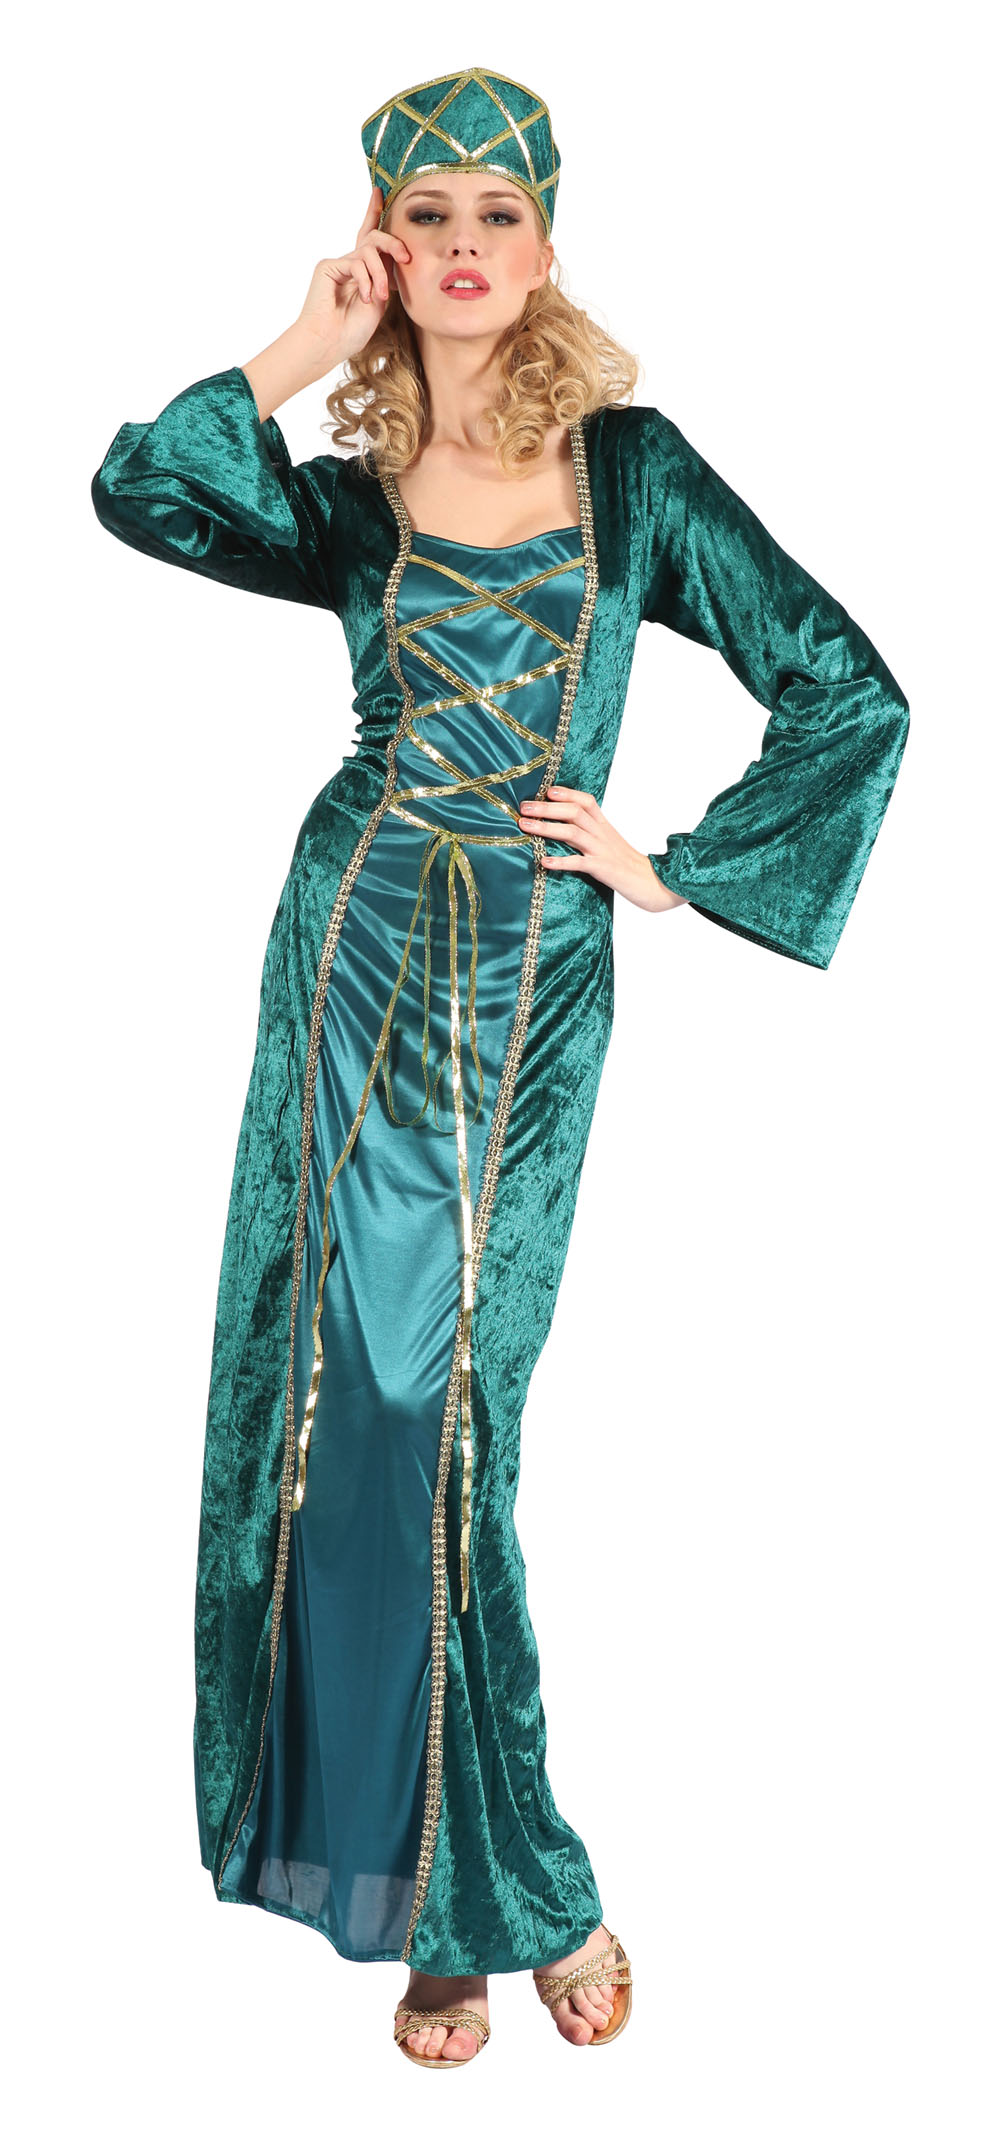 Ladies Queen Fancy Dress Costume Womens Green Blue Outfit UK 10-14